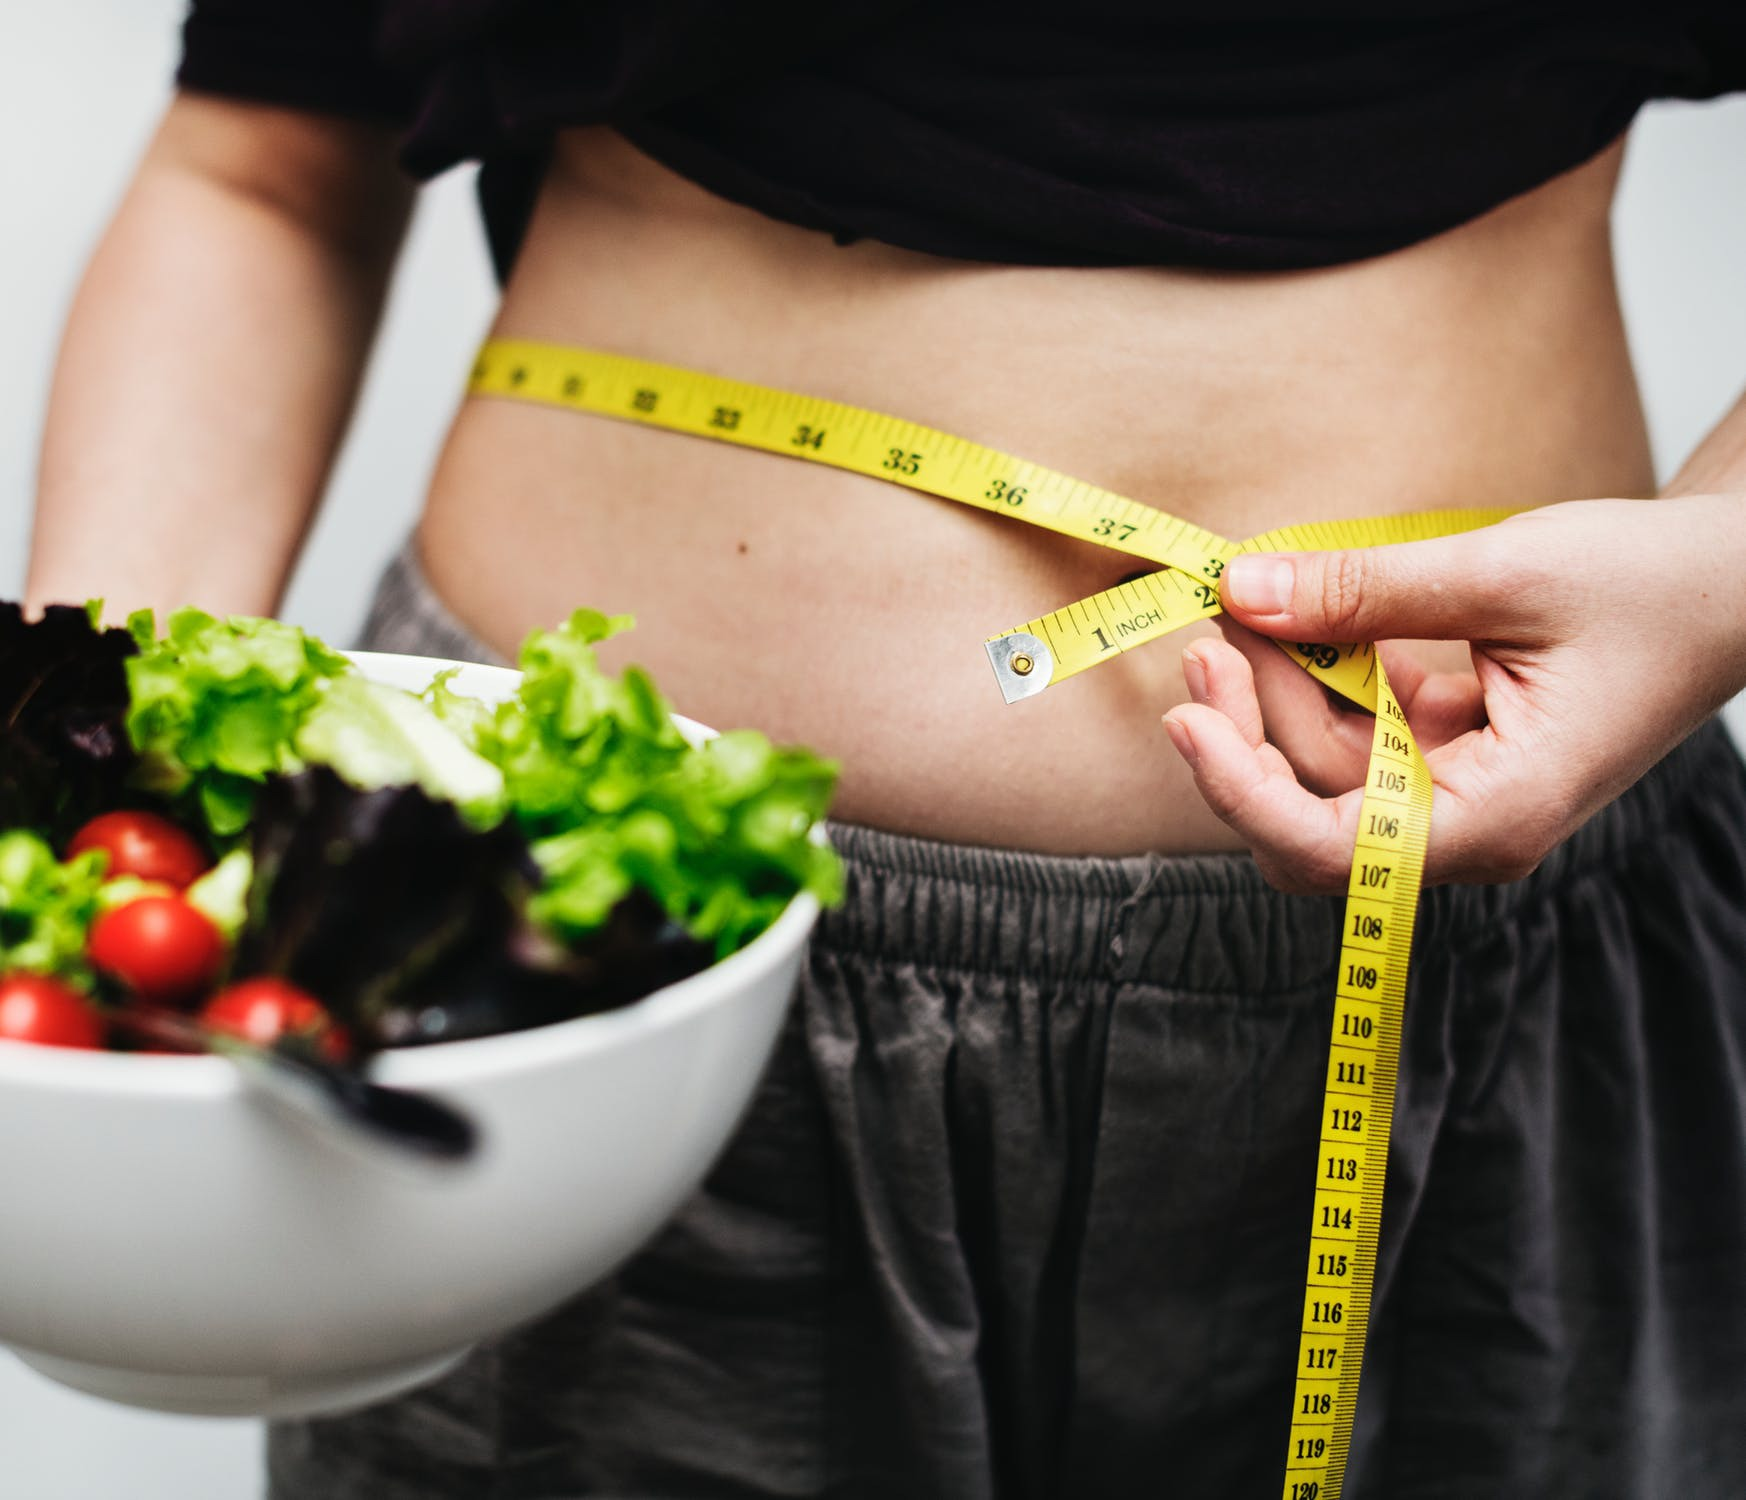 SCV Medical Group weight loss clinic for Burbank